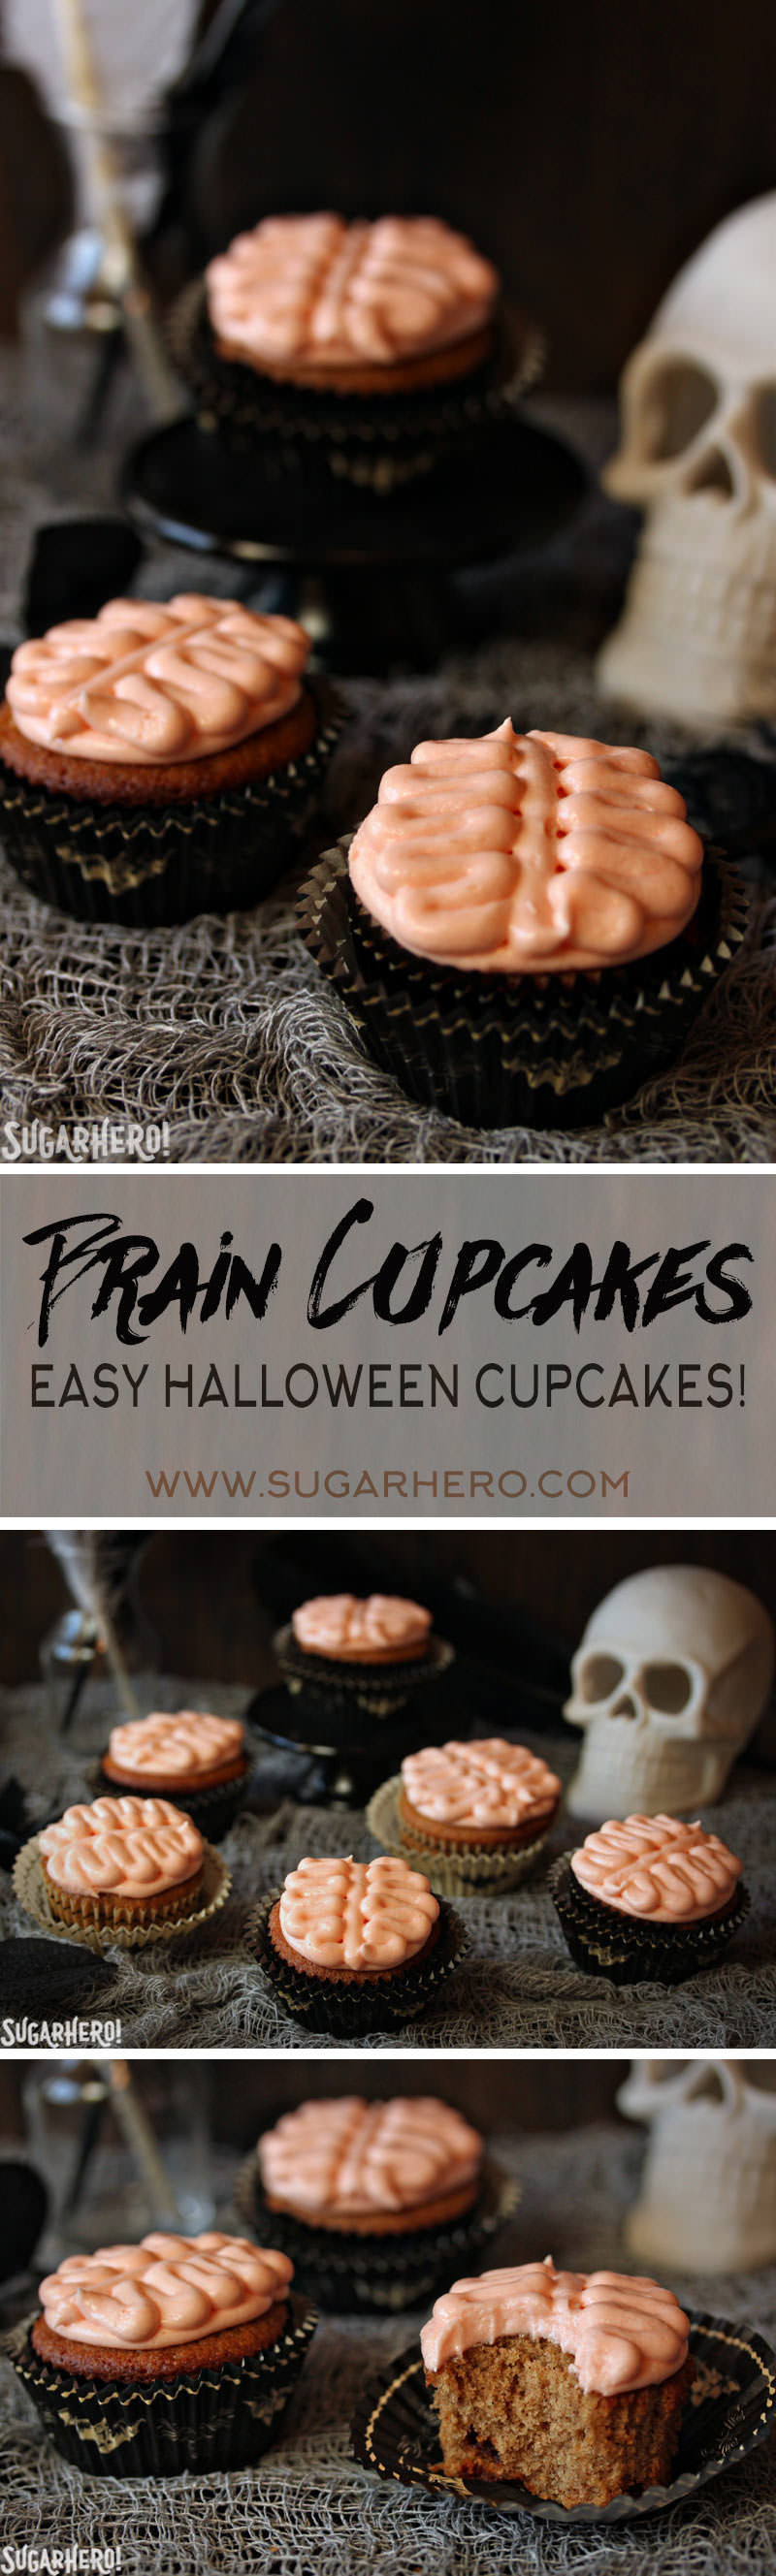 Brain Cupcakes | From SugarHero.com